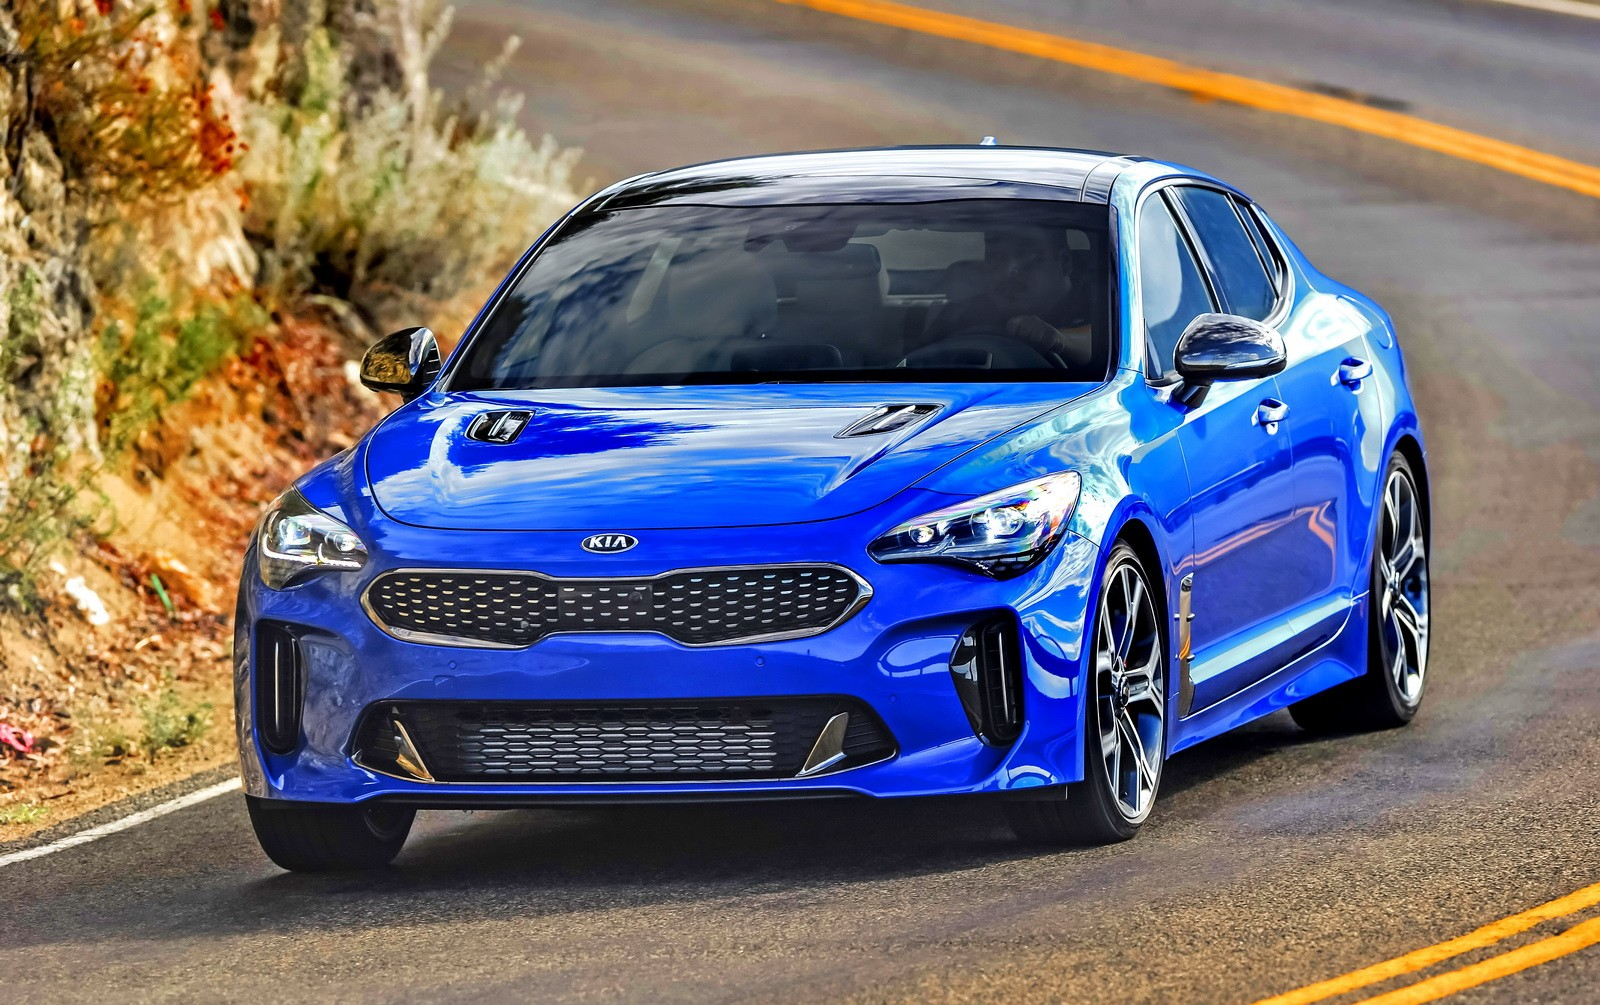 2018 Kia Stinger U S Model